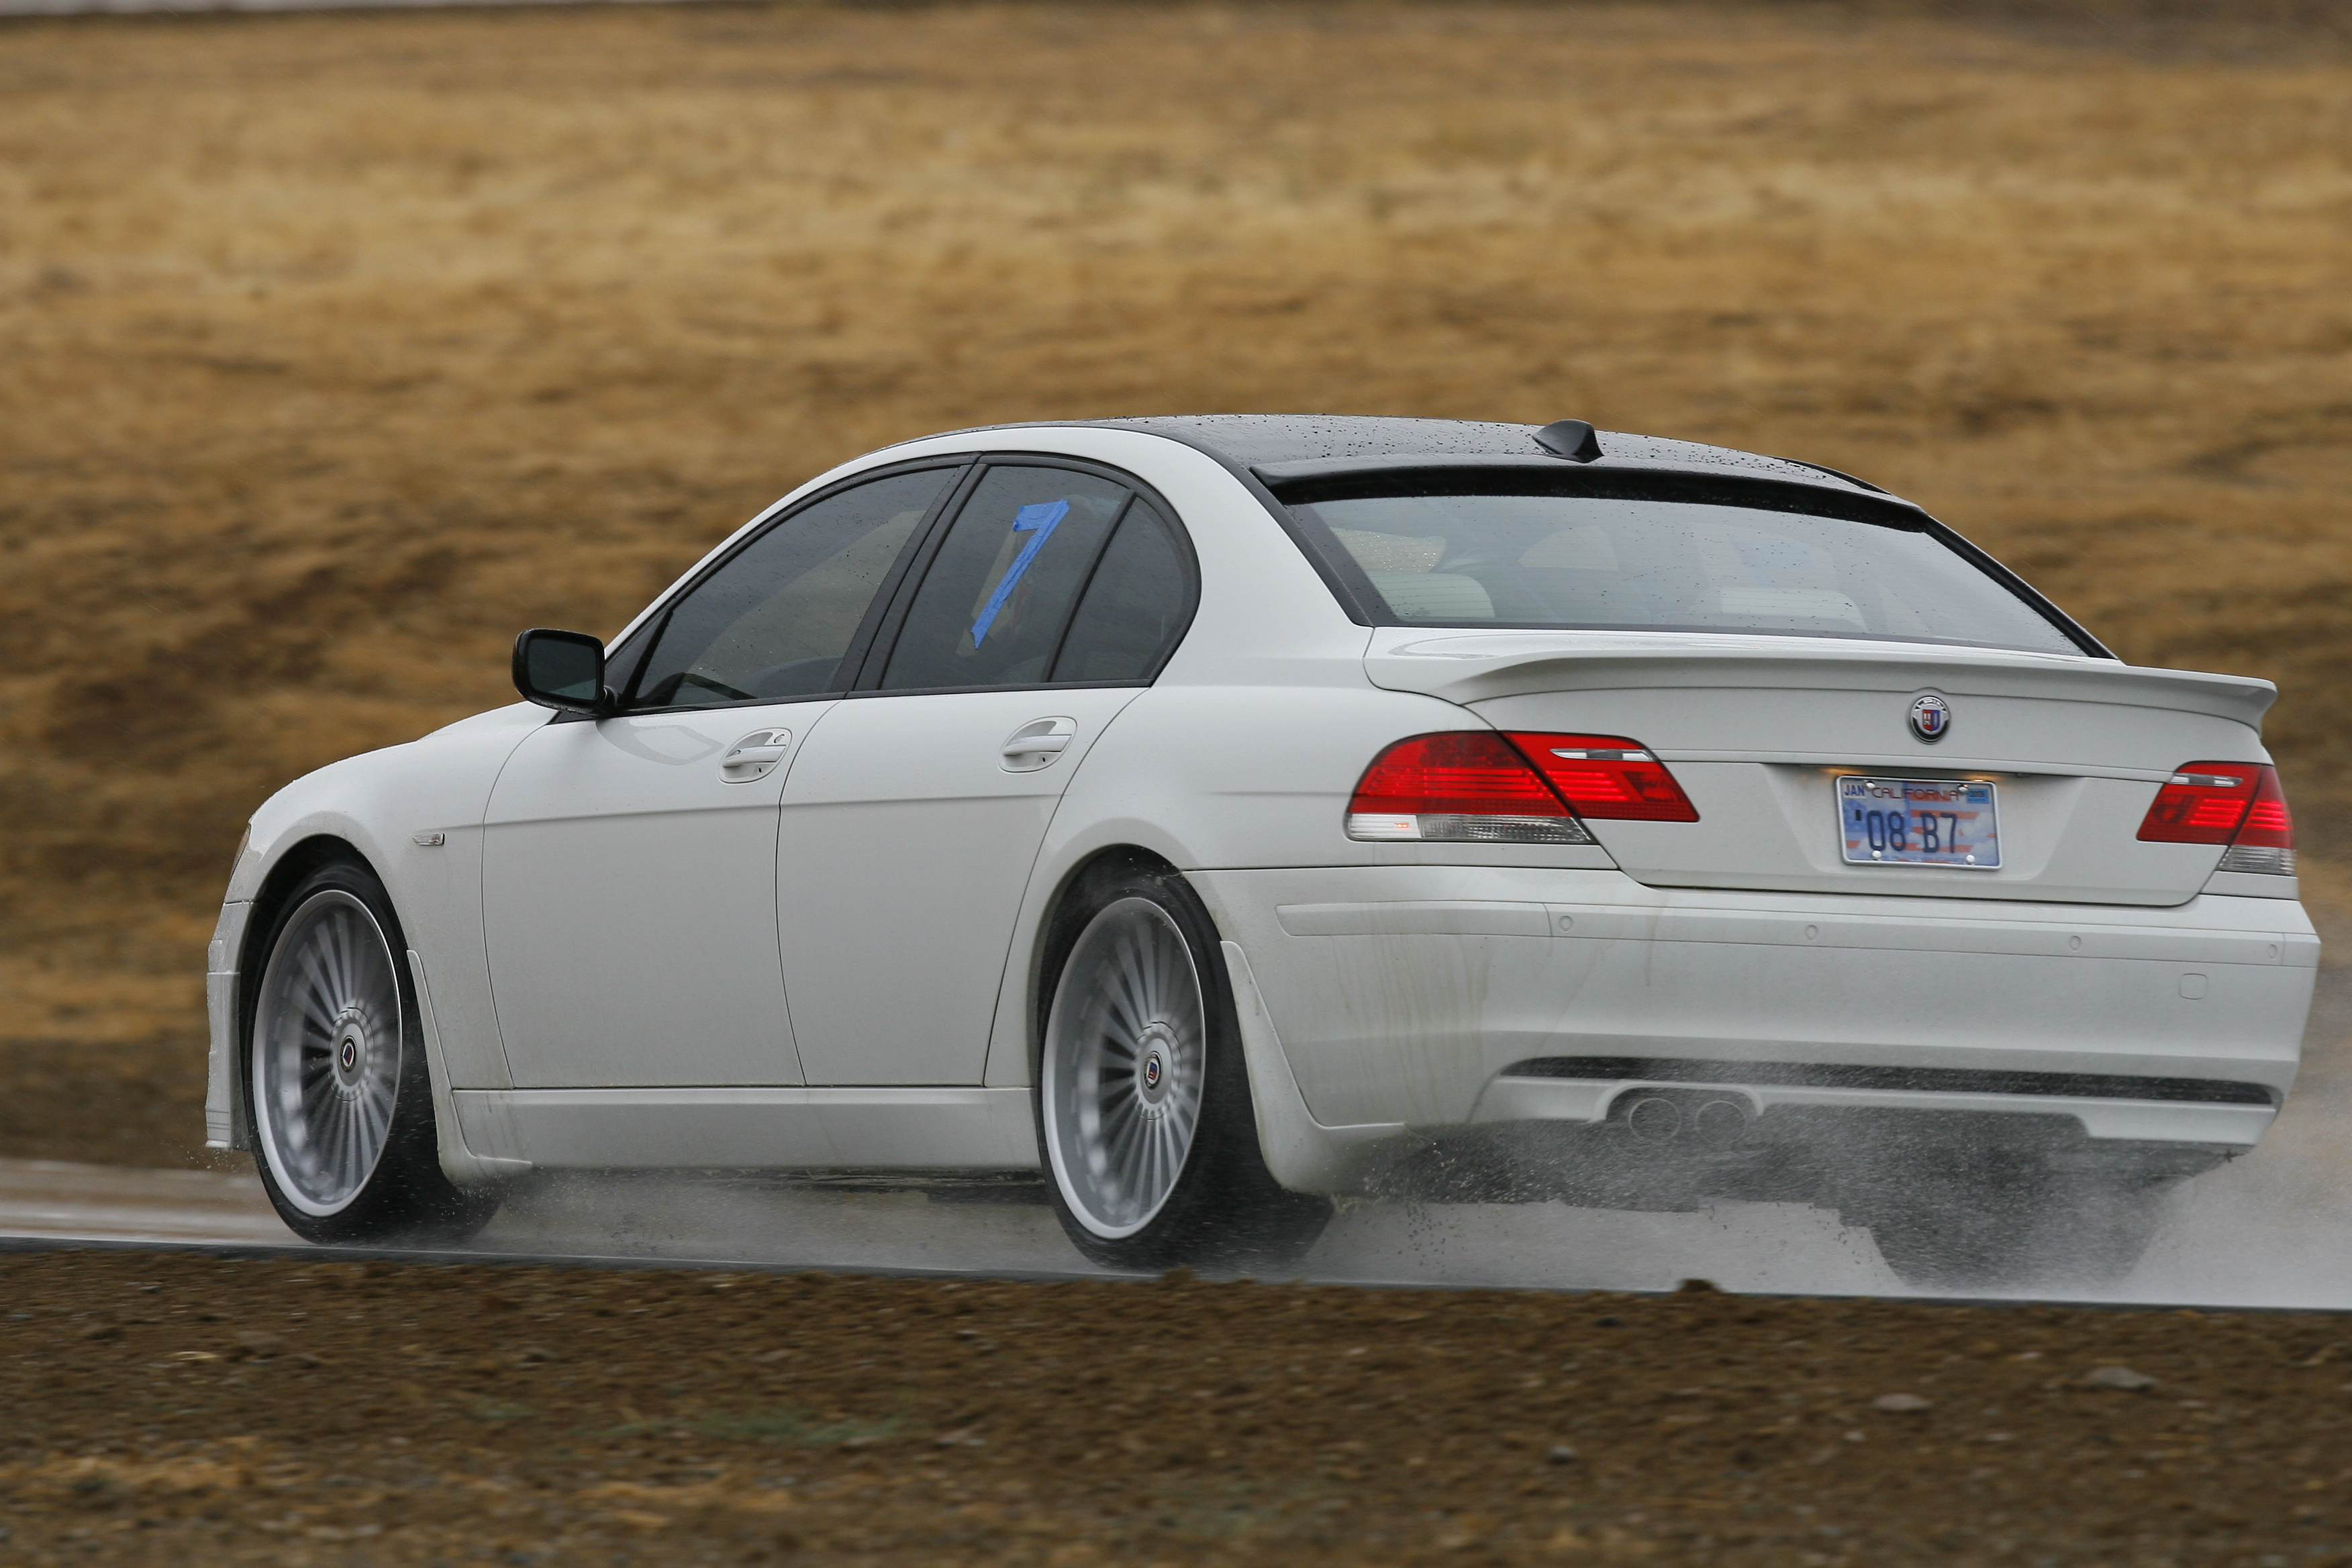 High Res Pictures Member Rturner Alpine White BMW ALPINA B7 On